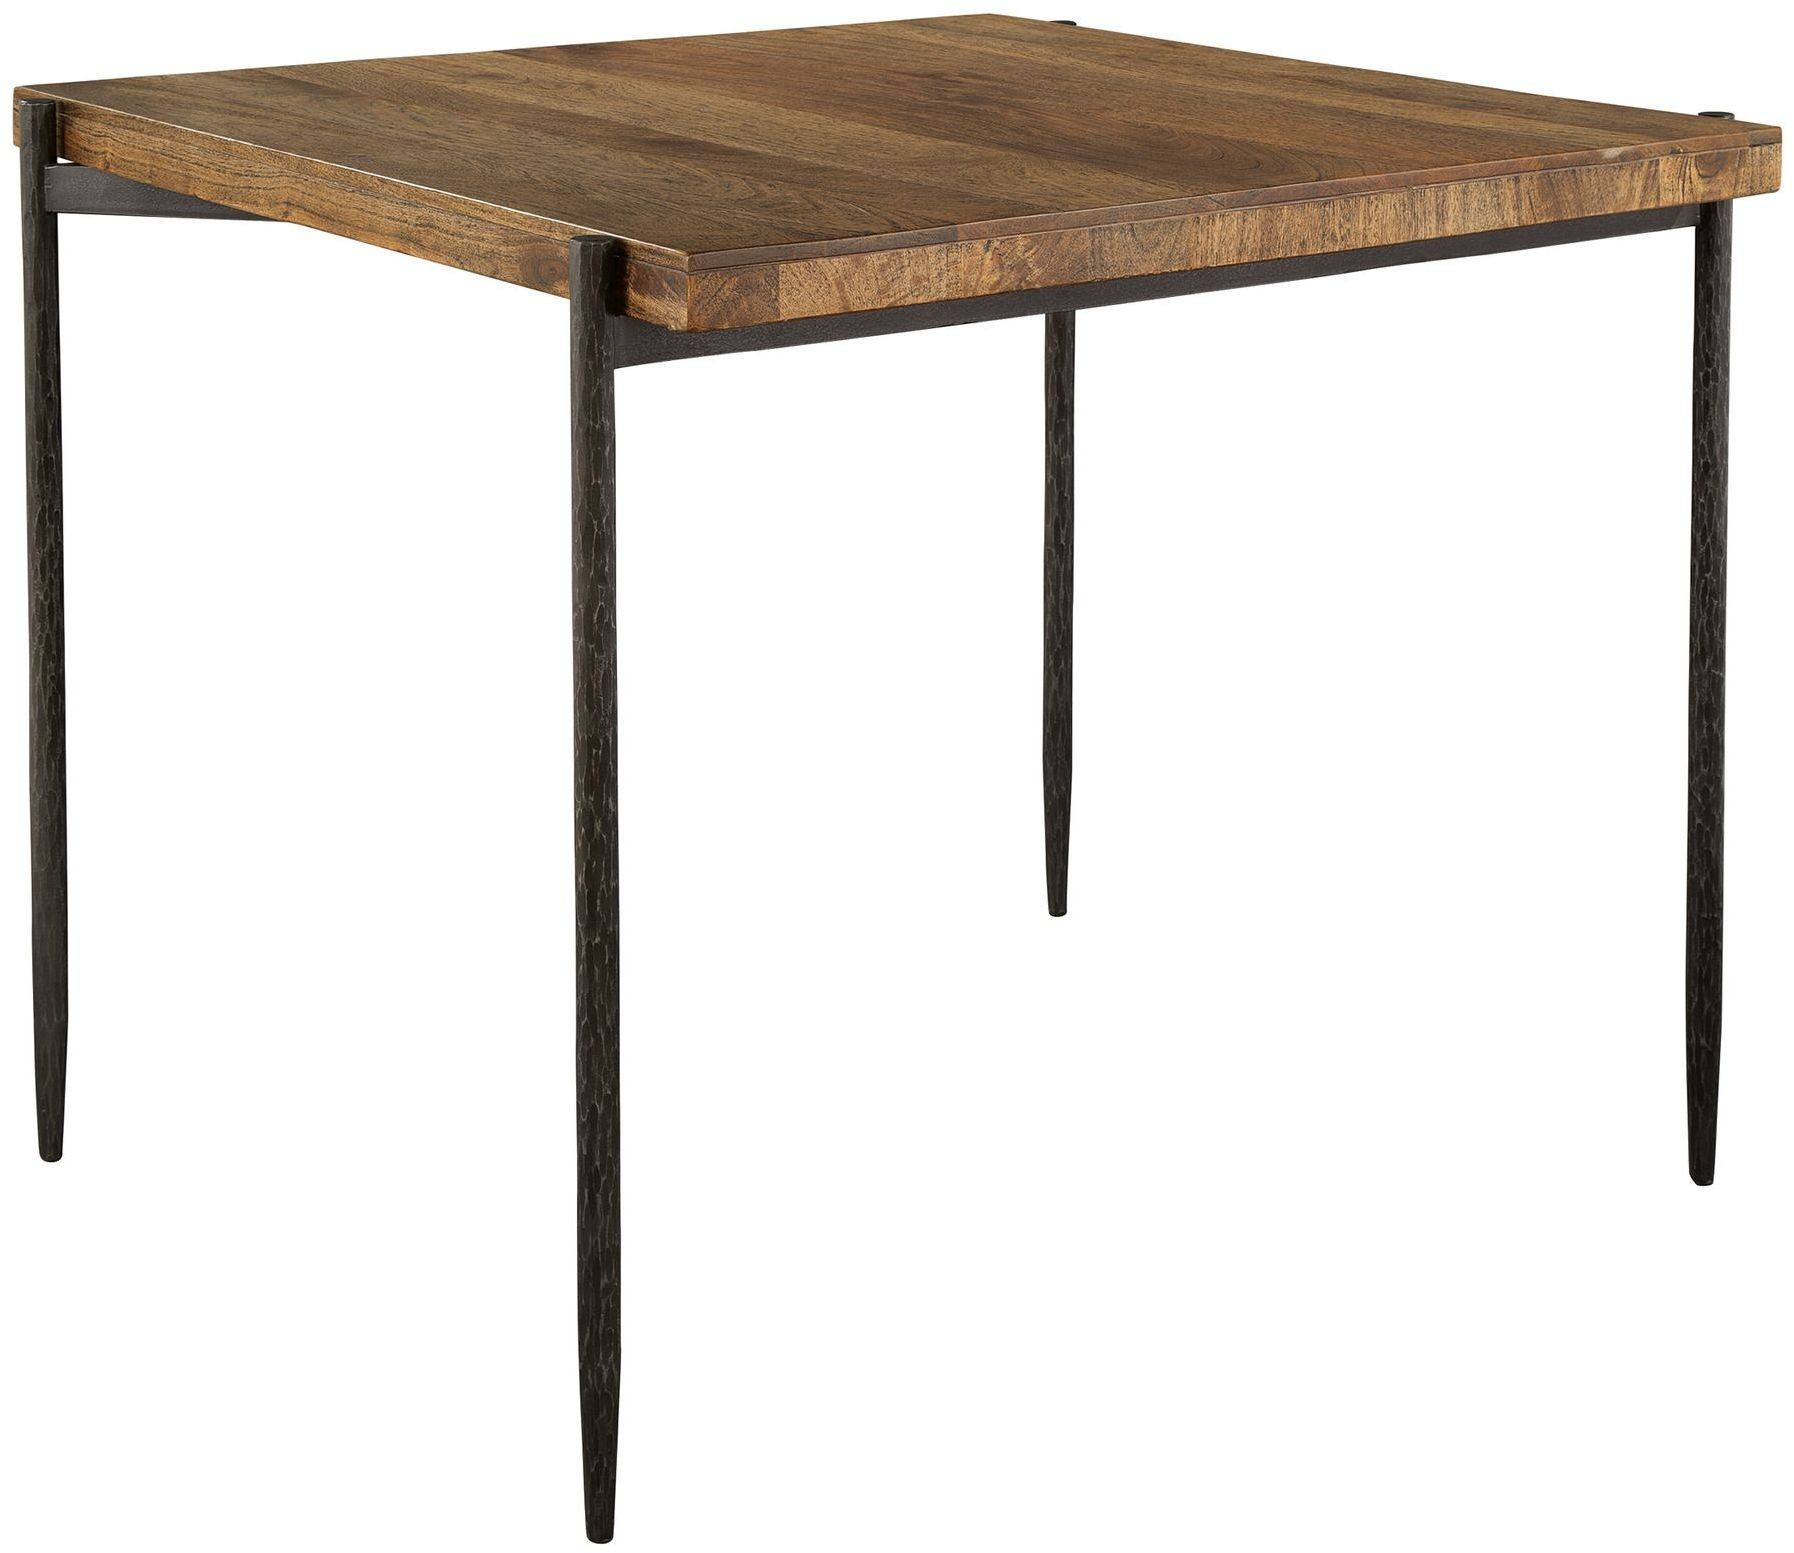 brown forged legs pub table from hekman furniture. Black Bedroom Furniture Sets. Home Design Ideas